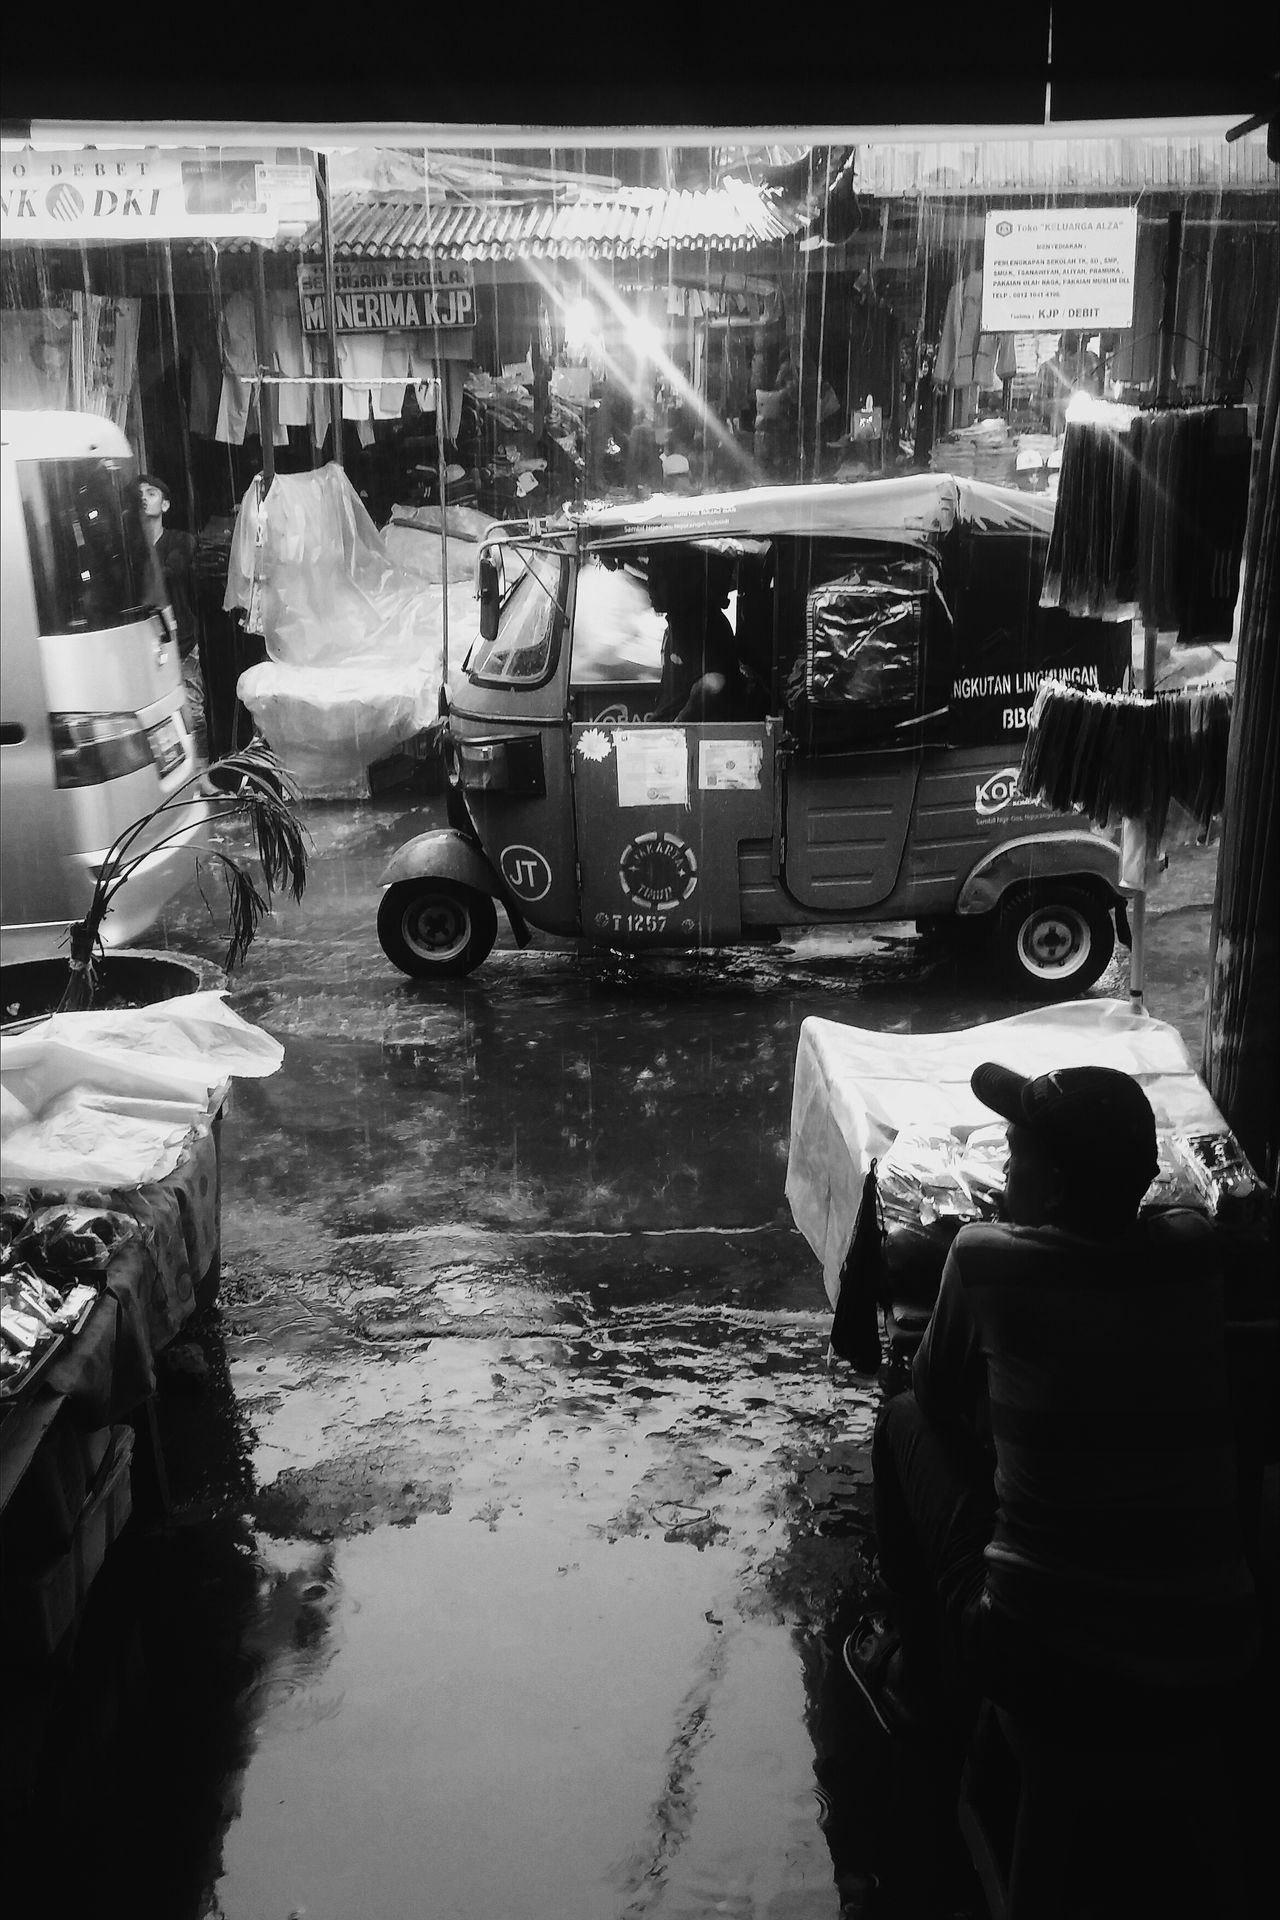 Transportation Wet Street Land Vehicle Mode Of Transport Rain Reflection Road Real People Rainy Monochrome Black And White Snap a Stranger Embrace Urban Life